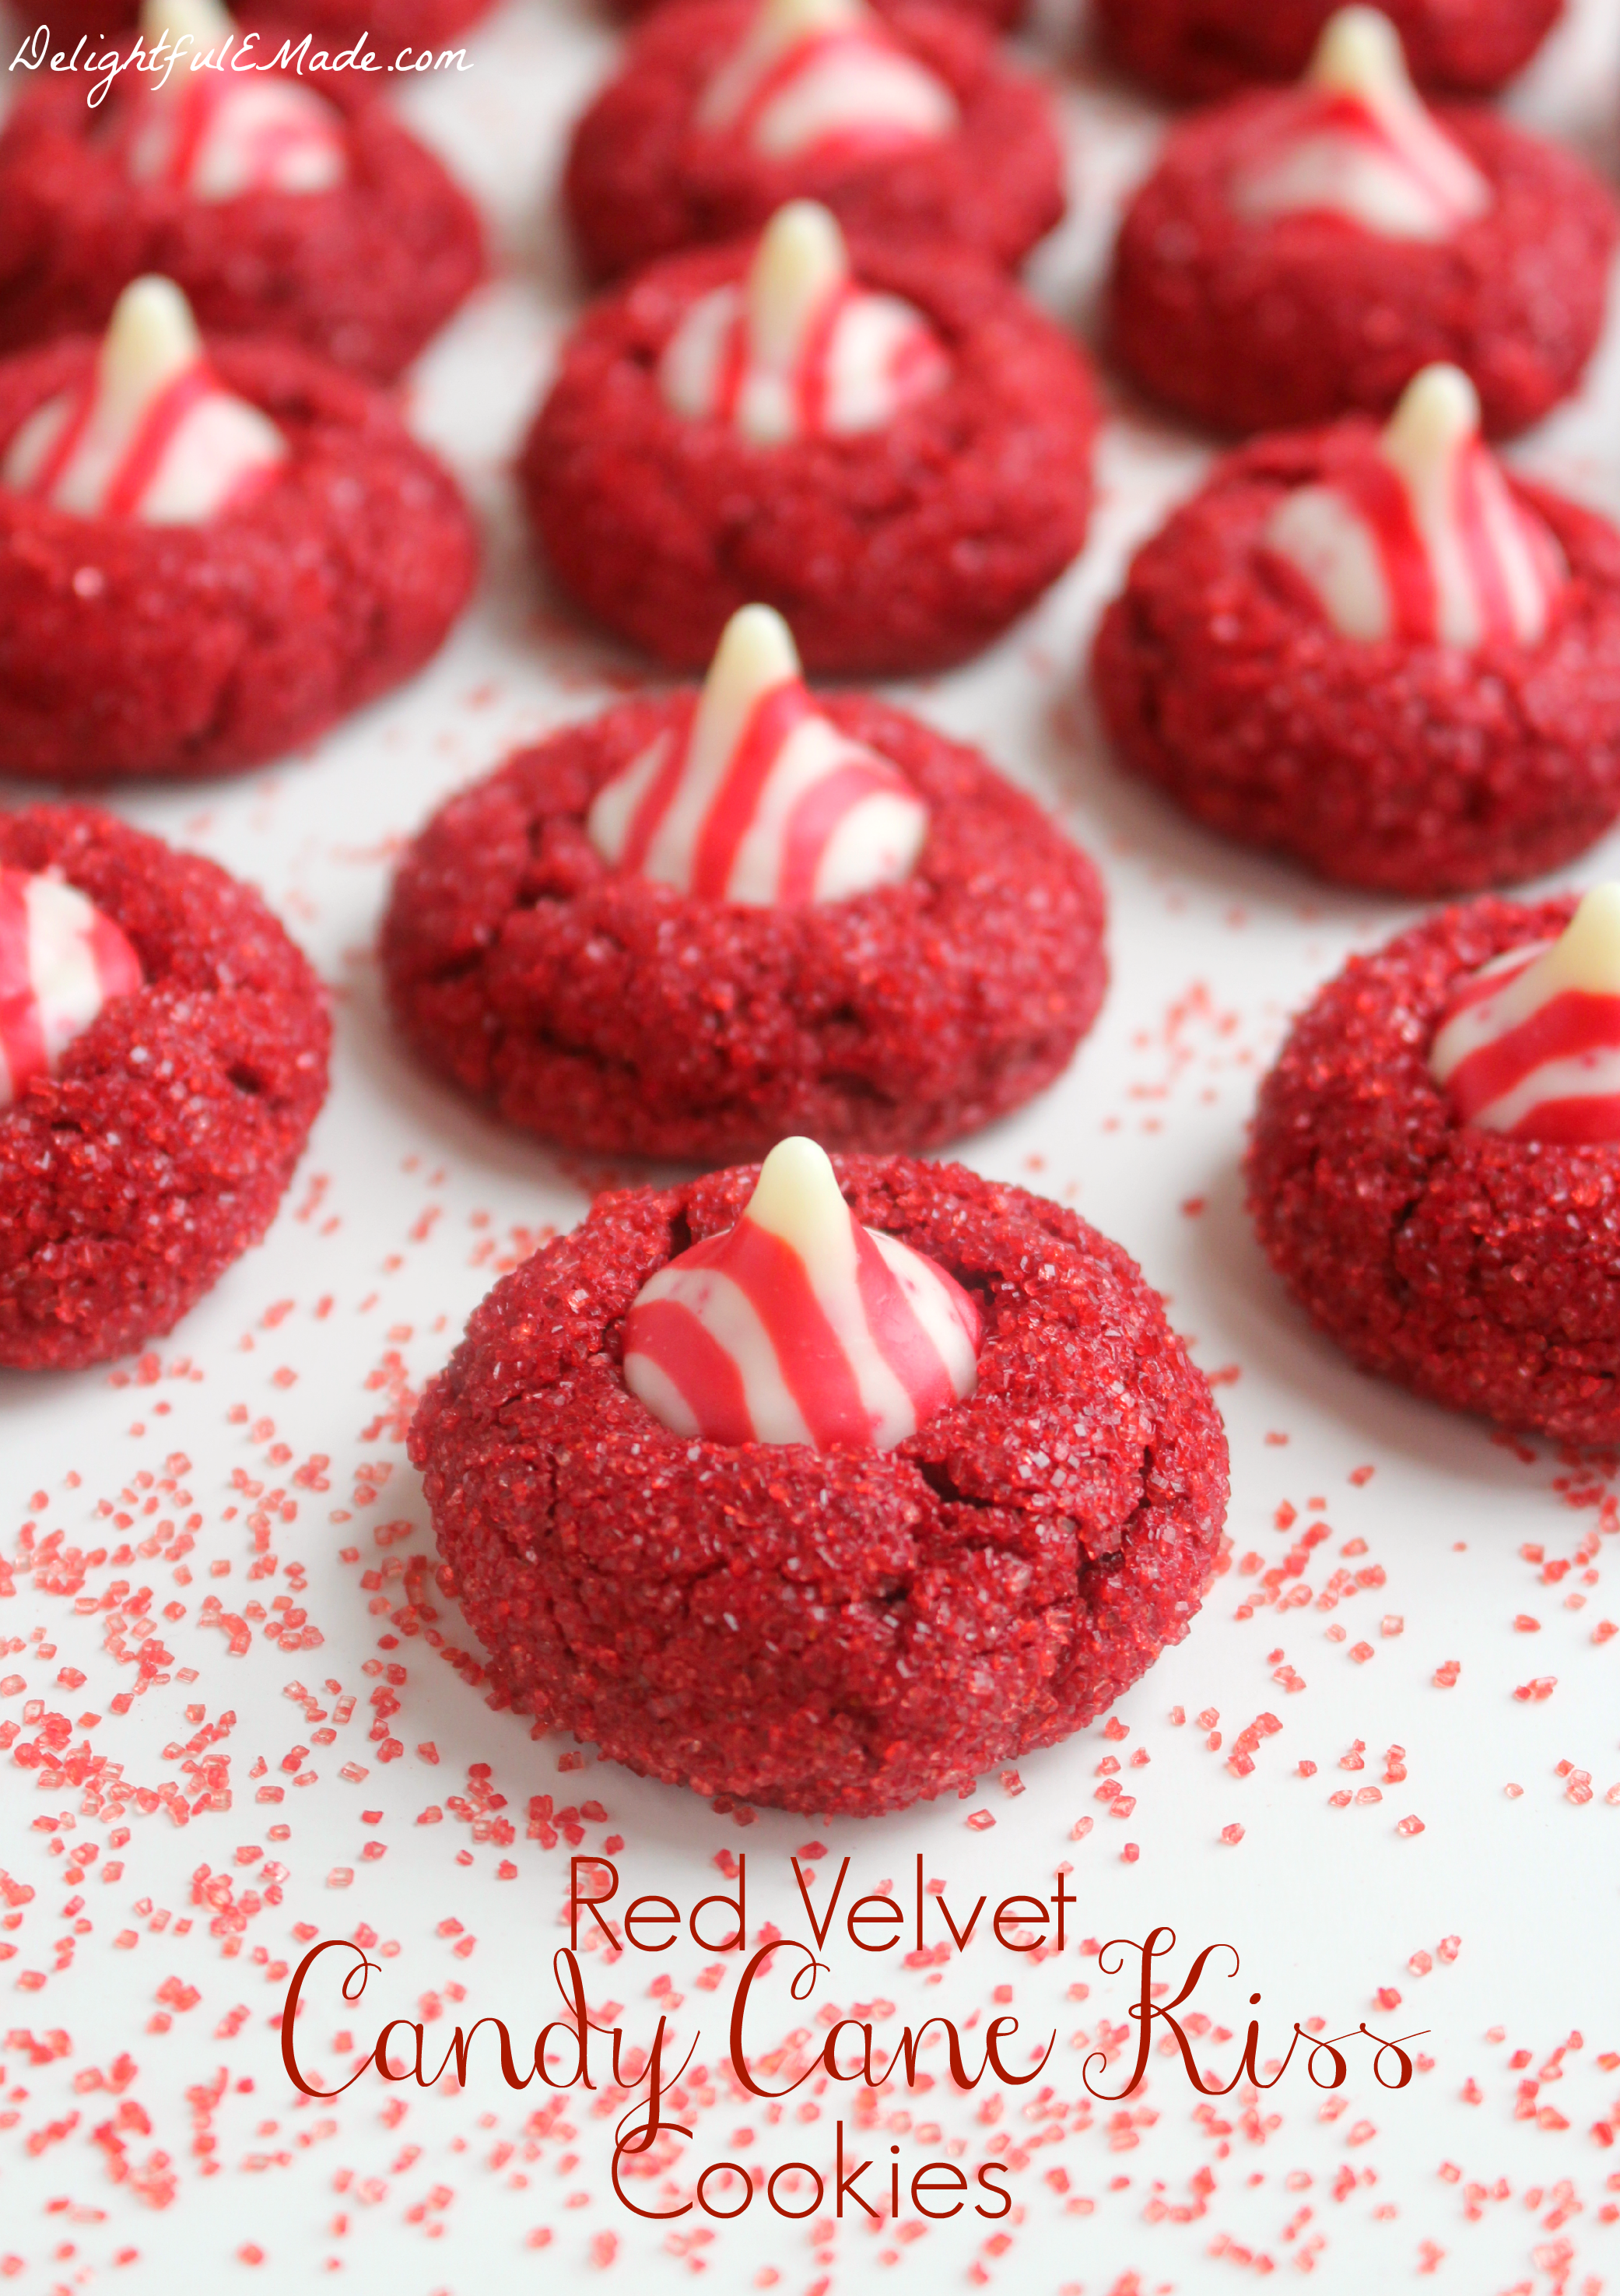 Red Velvet Candy Cane Kiss Cookies - Delightful E Made